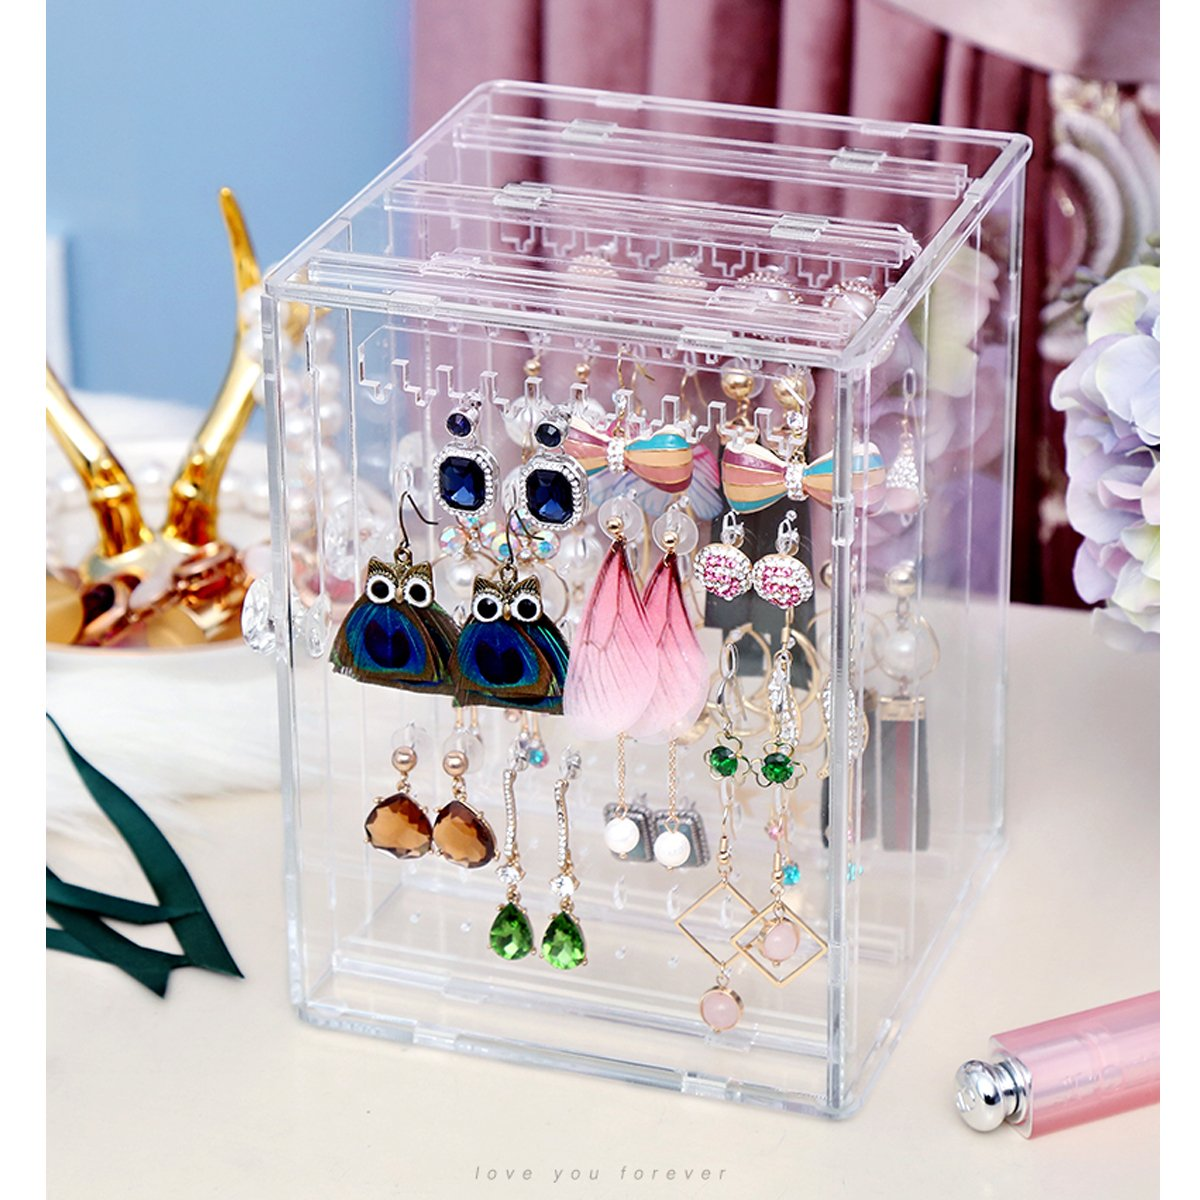 Transparent Orgrimmar Acrylic Jewelry Storage Box Earring Display Stand Organizer Holder with 3 Vertical Drawer